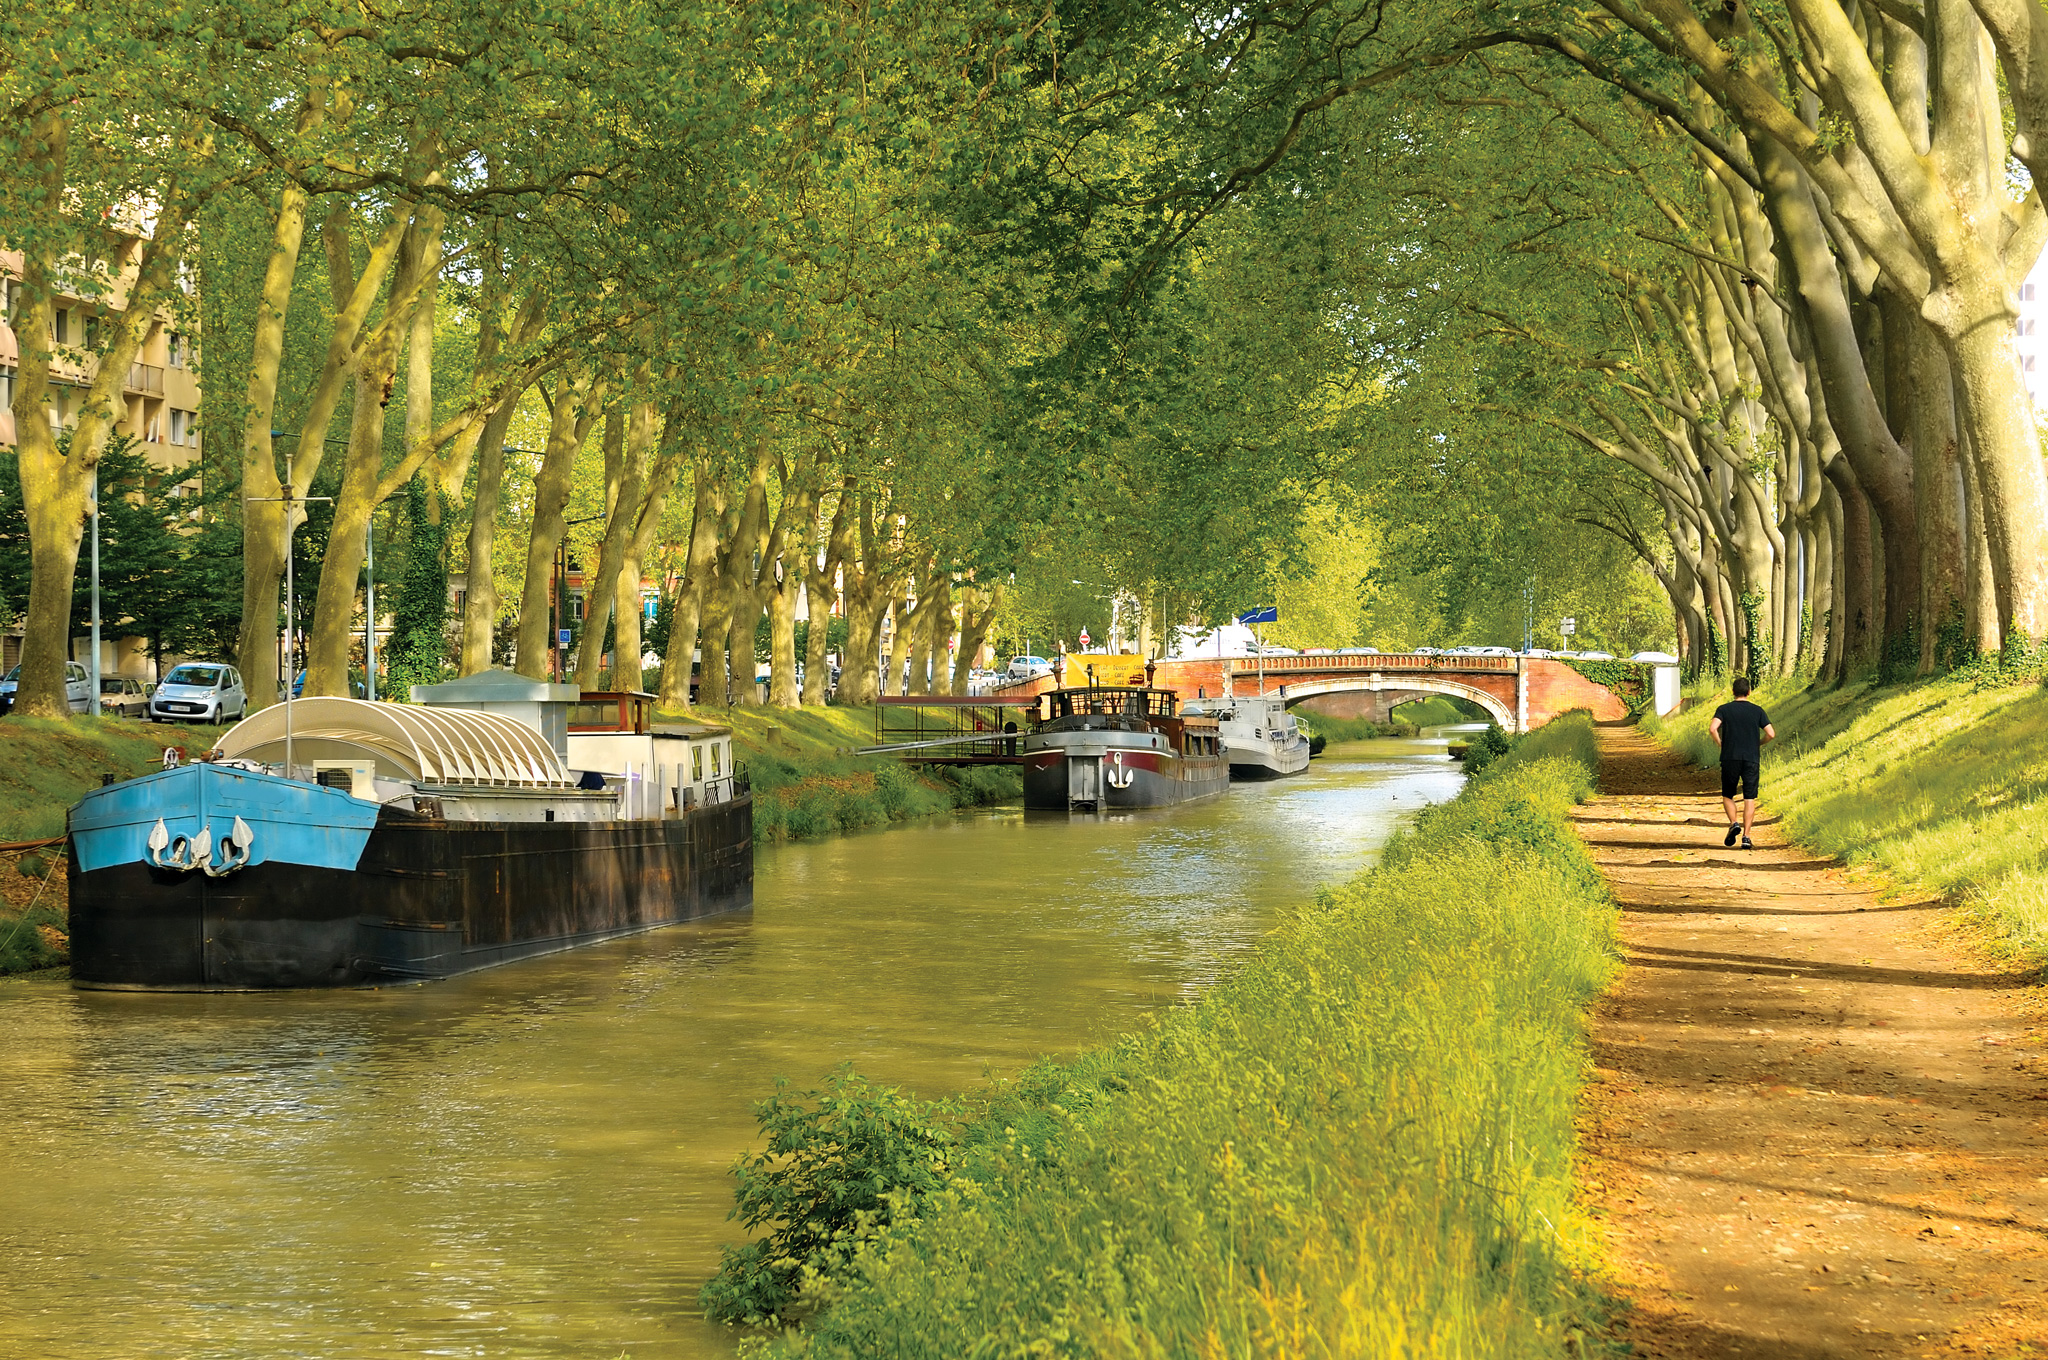 cycling canal du midi toulouse transat. Black Bedroom Furniture Sets. Home Design Ideas